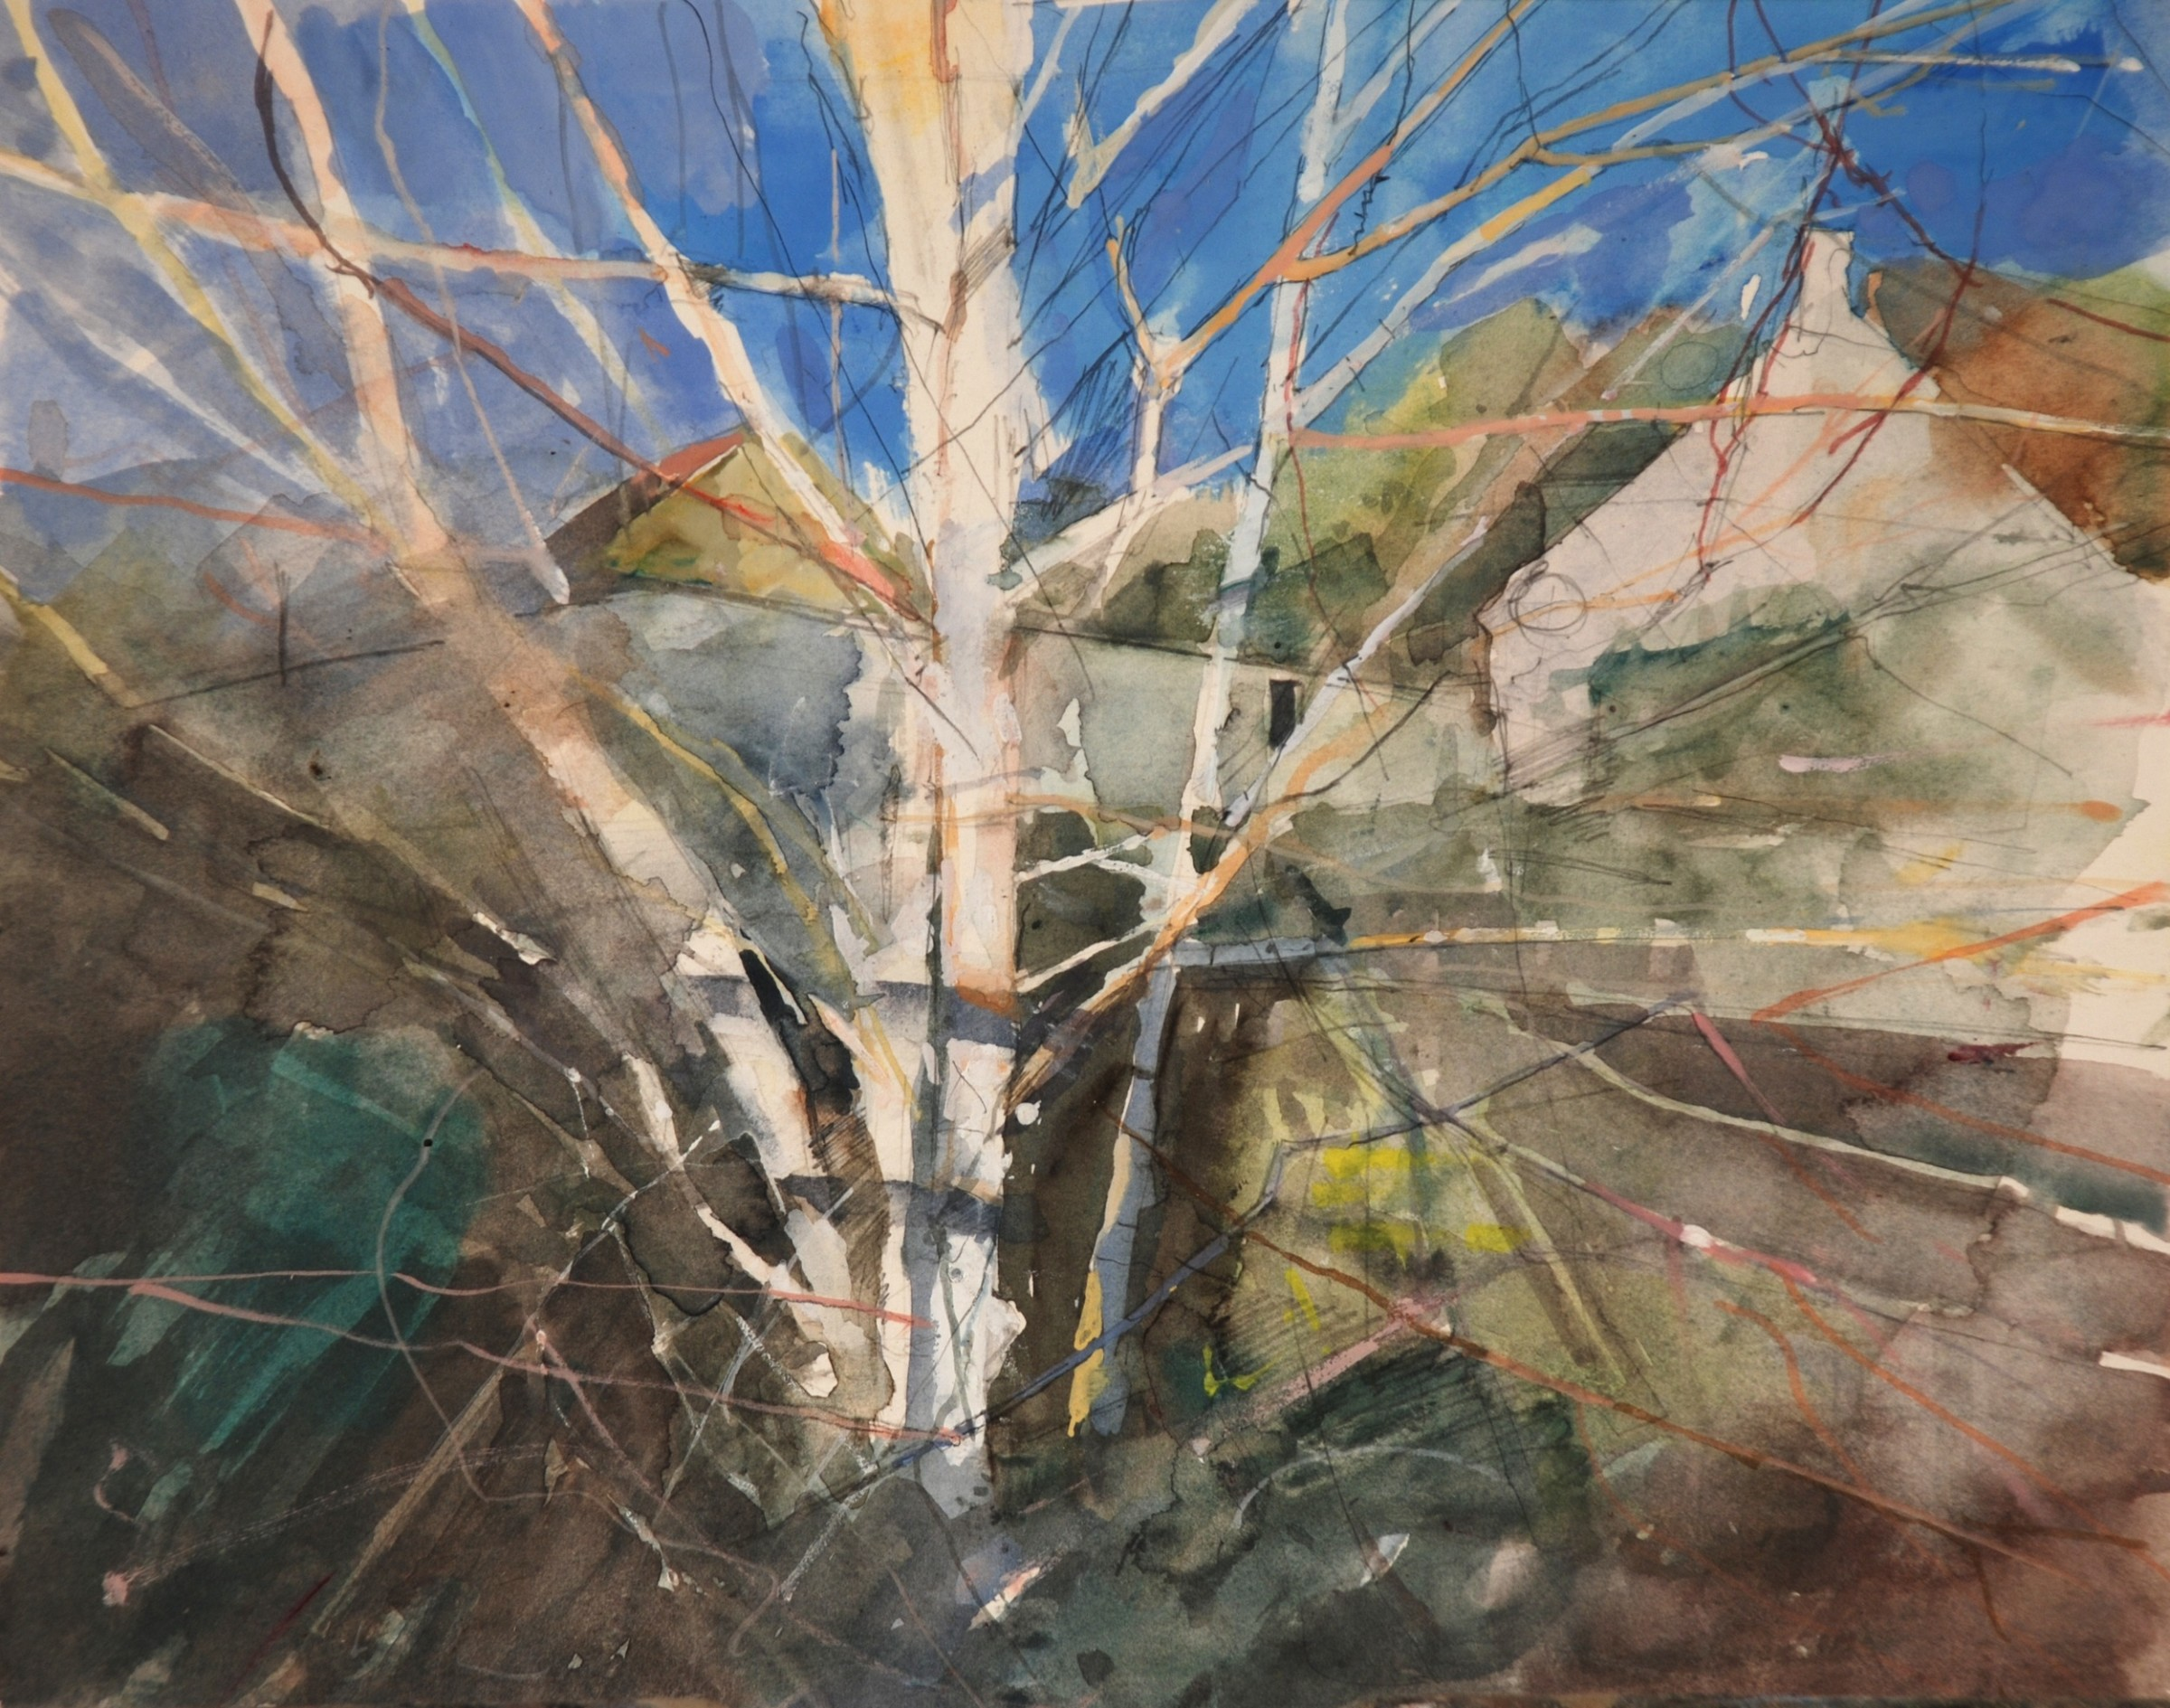 <span class=&#34;link fancybox-details-link&#34;><a href=&#34;/artists/92-richard-pikesley/works/10768-richard-pikesley-birch-trees-middlehill/&#34;>View Detail Page</a></span><div class=&#34;artist&#34;><span class=&#34;artist&#34;><strong>Richard Pikesley</strong></span></div>